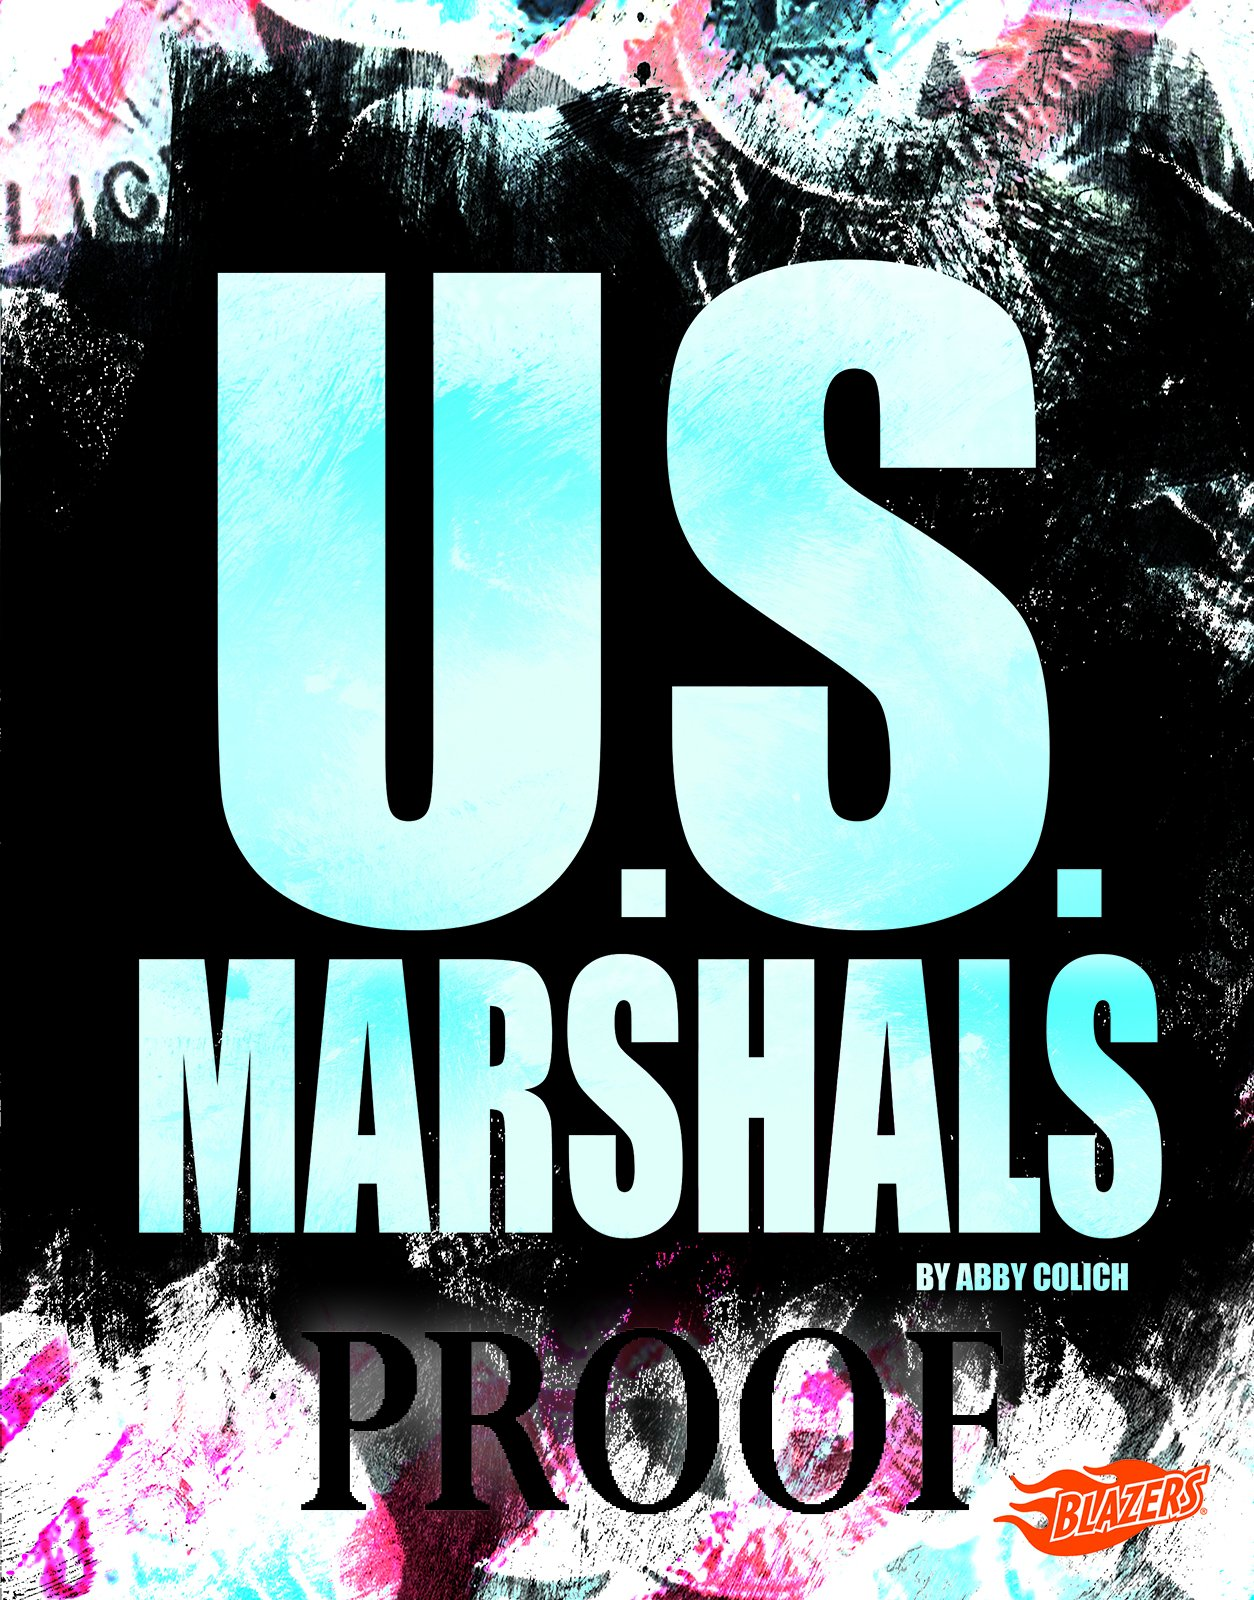 U.S. Marshals (U.S. Federal Agents)